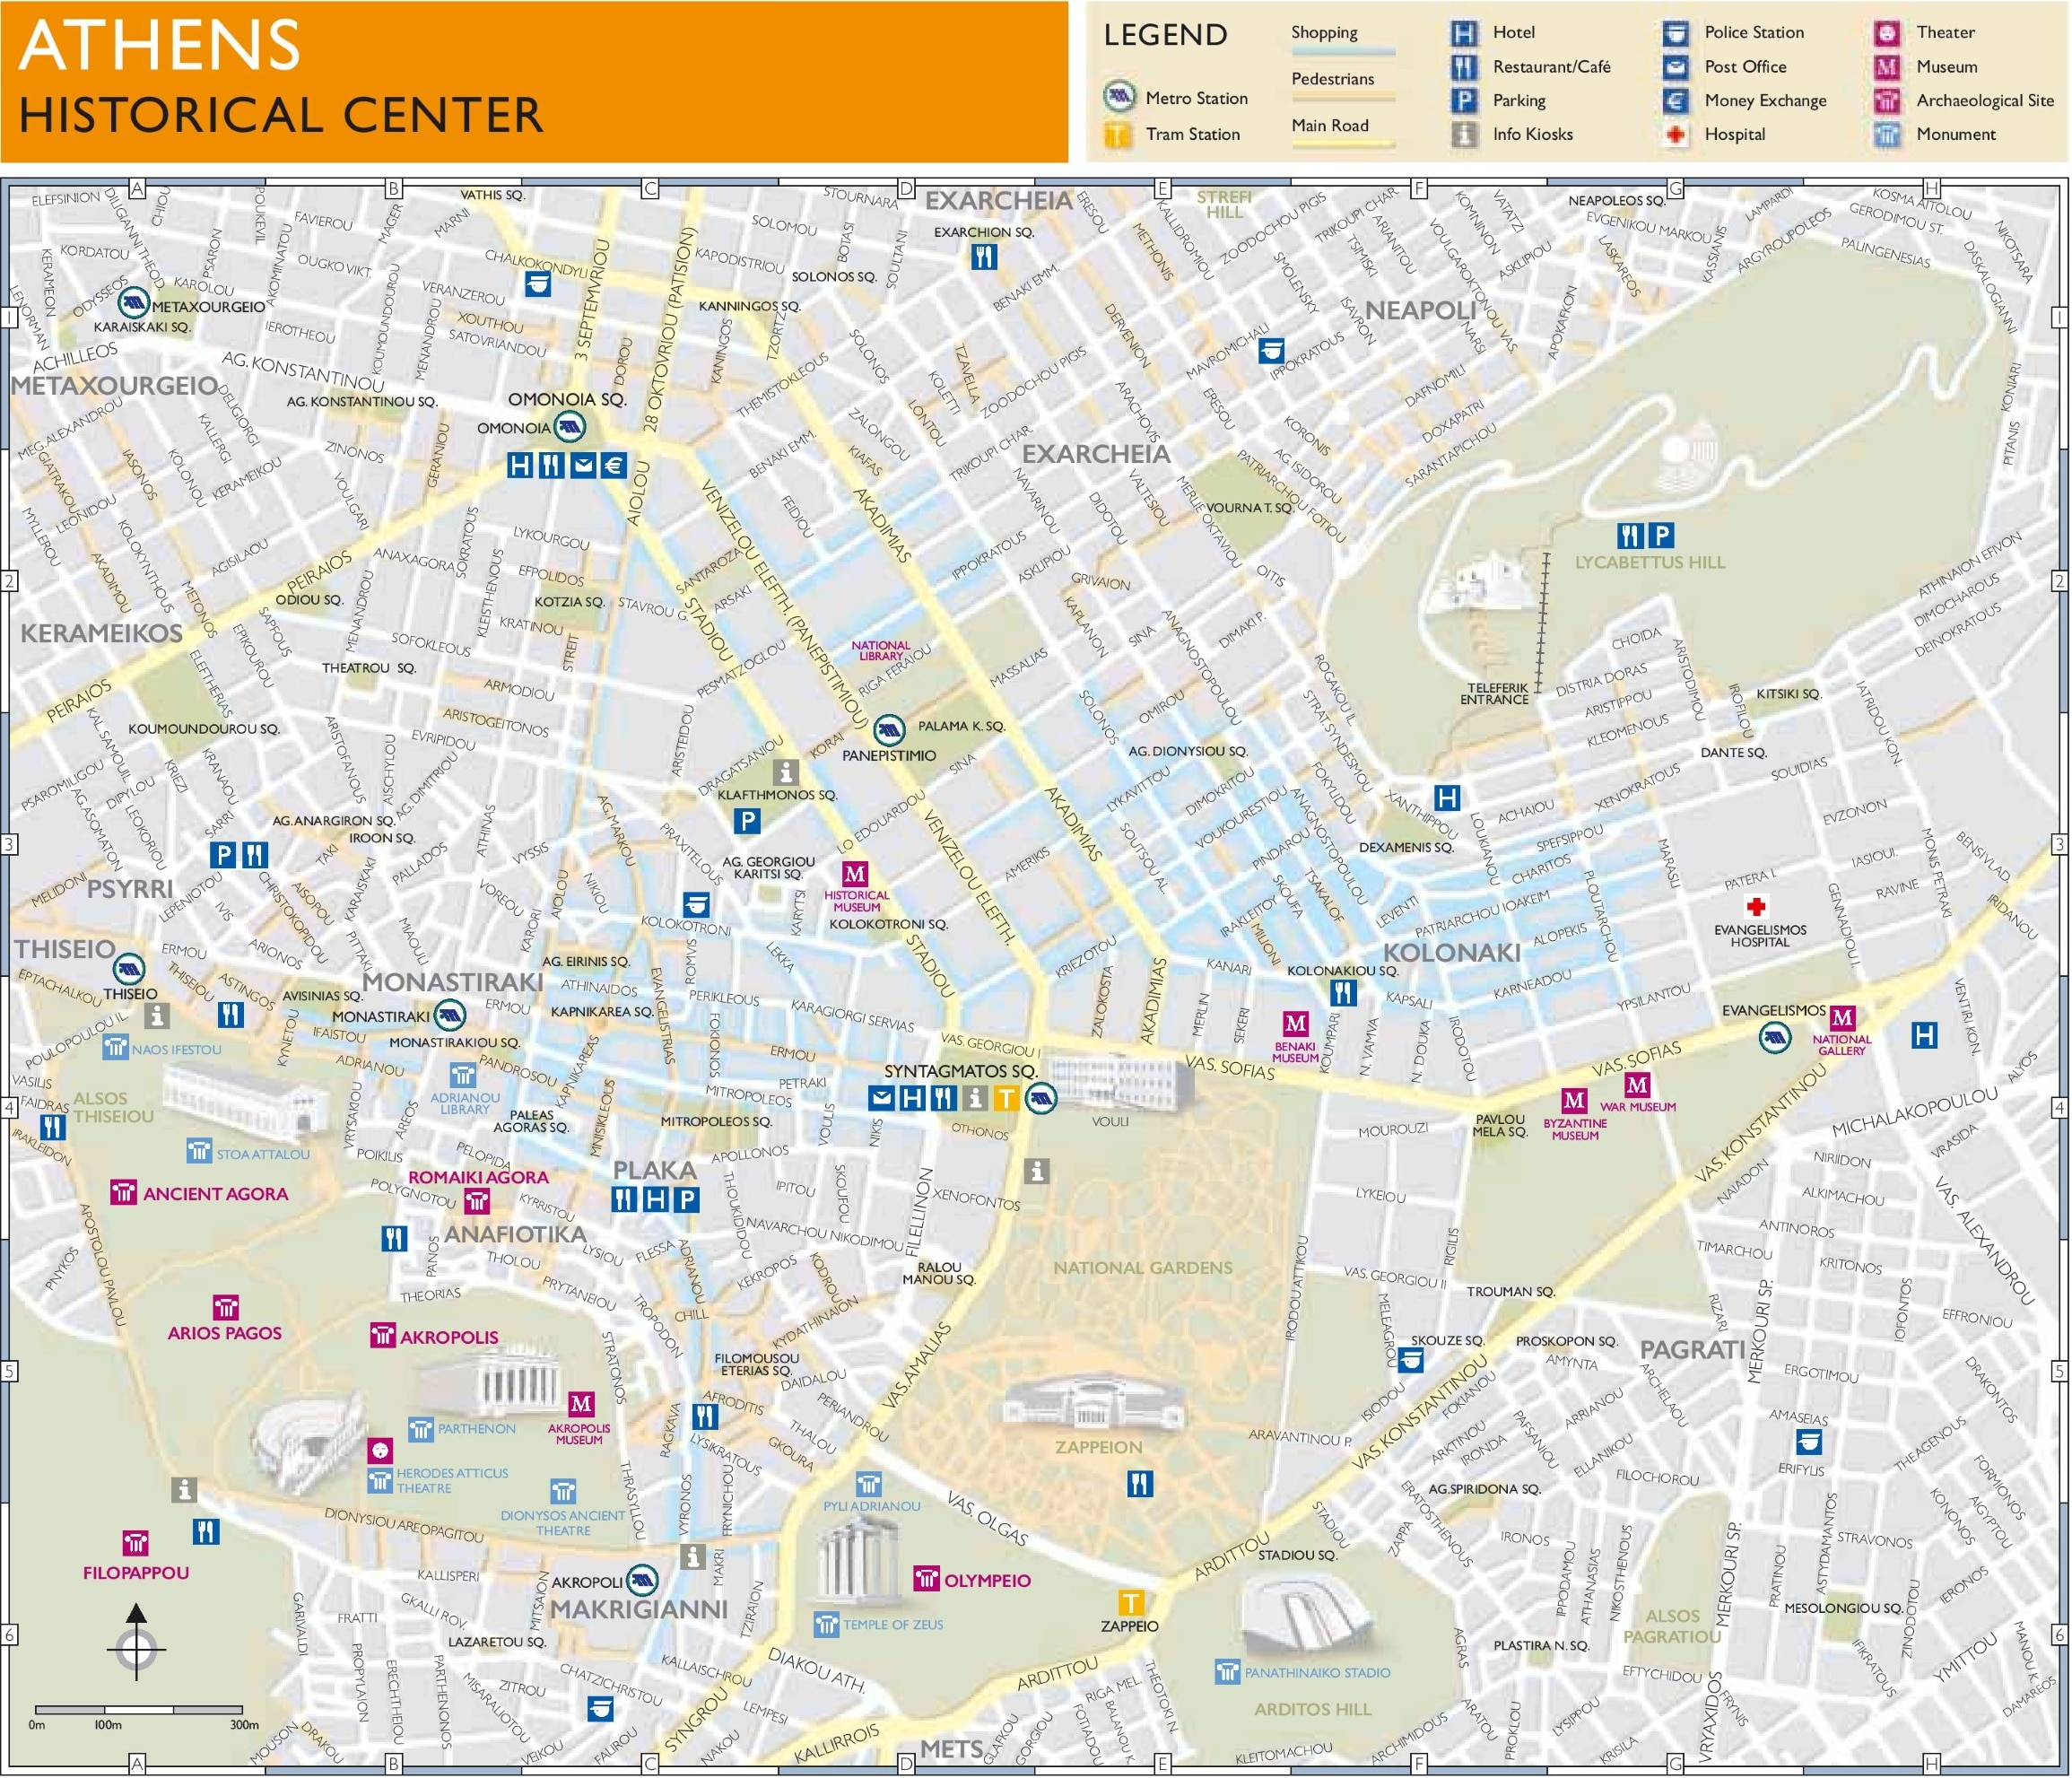 Map of Athens' historical center